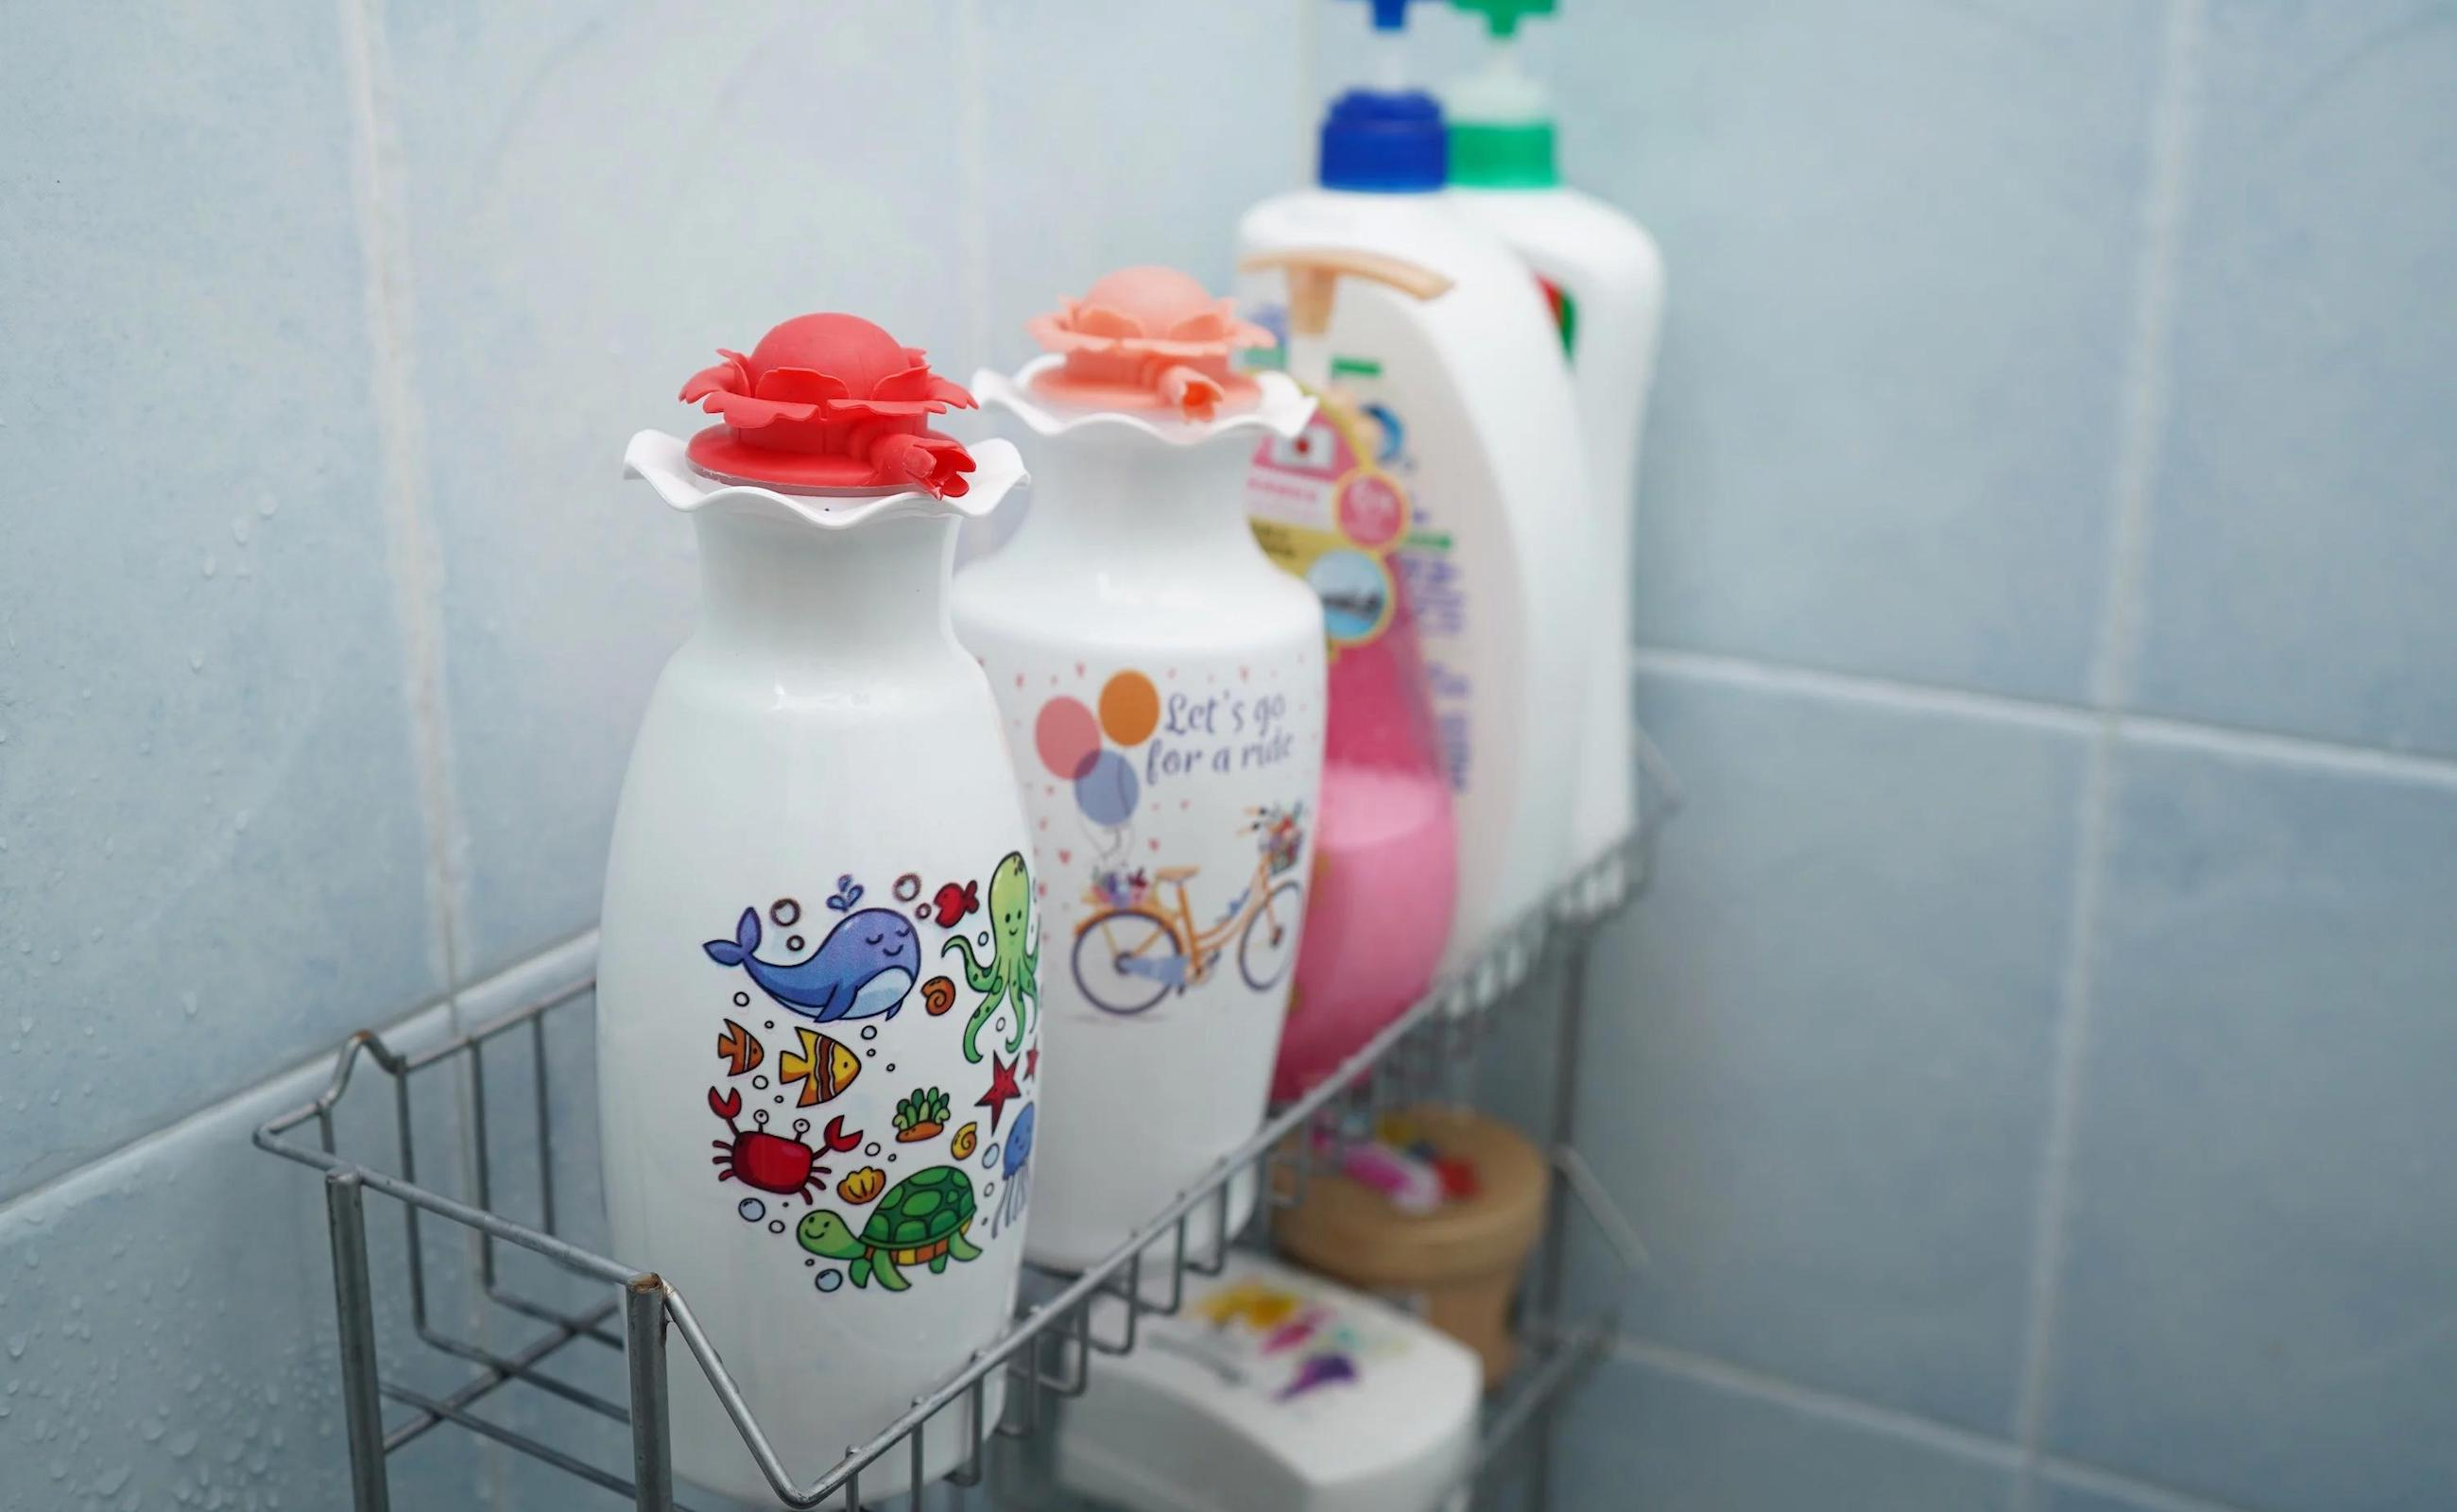 Recyclable Elastic Lotion Pump & Vase dispenses just what you need